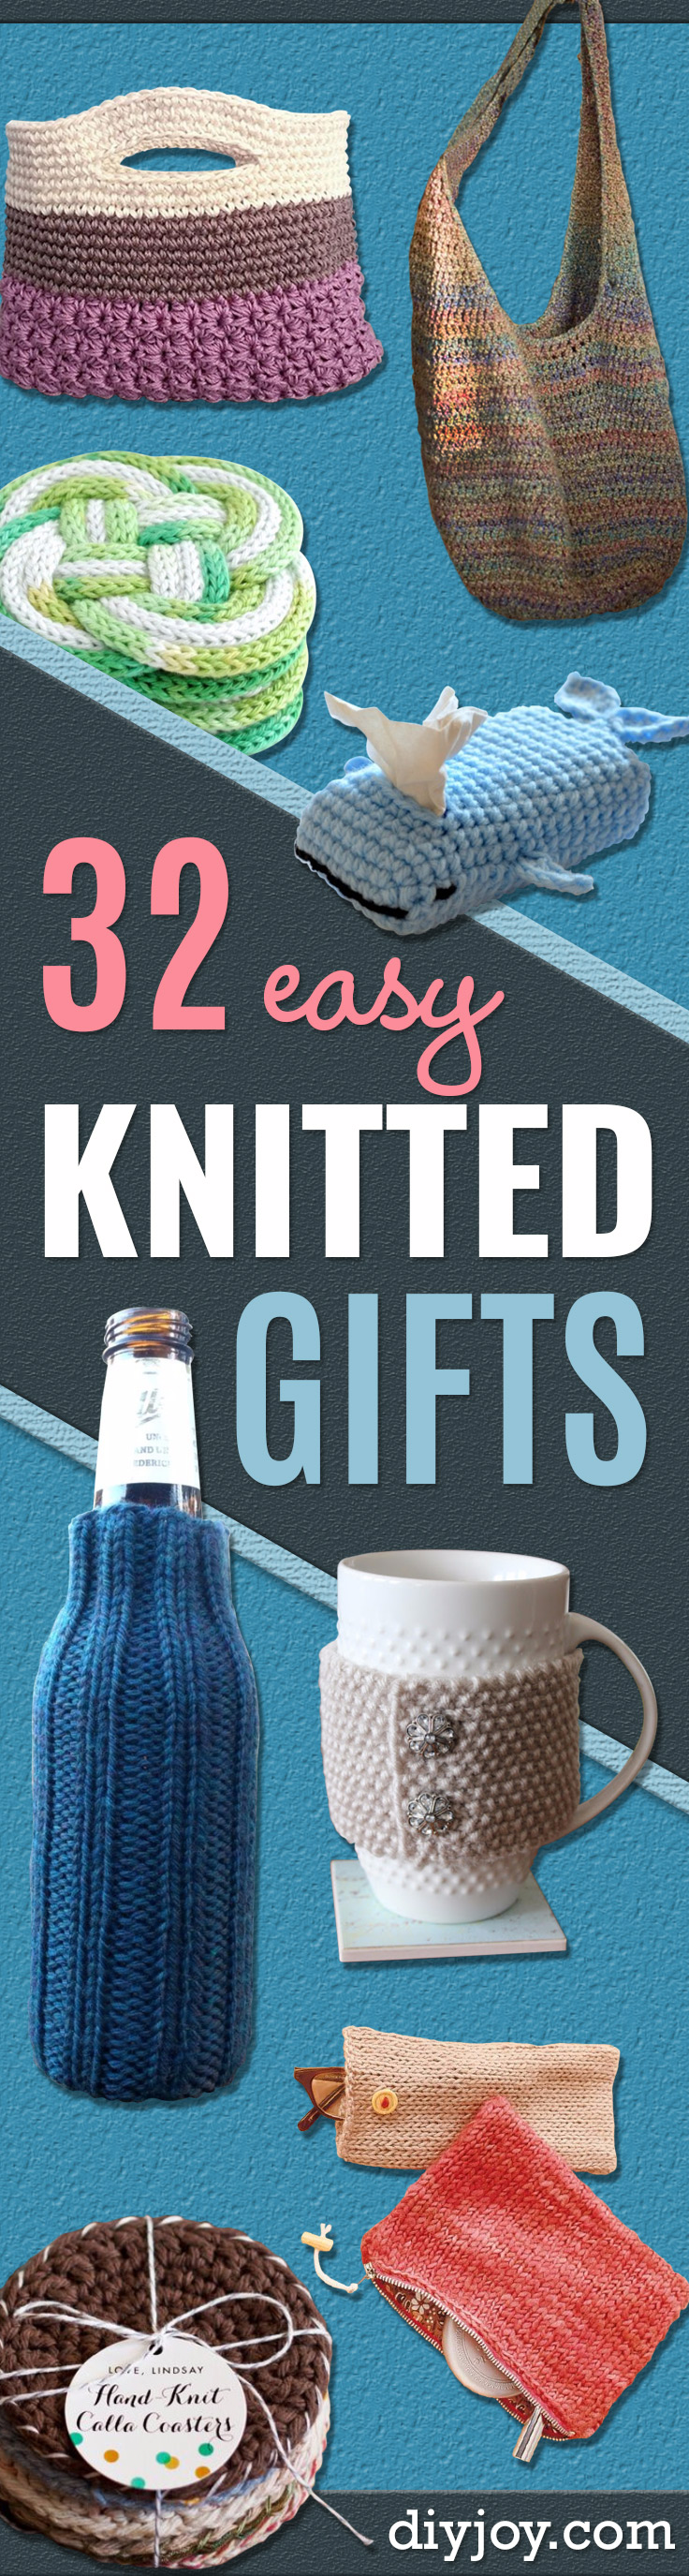 32 Easy Knitted Gifts - Last Minute Knitted Gifts, Best Knitted Gifts For Anyone, Easy Knitted Gifts To Make, Knitted Gifts For Friends, Easy Knitting Patterns For Beginners, Quick And Easy Knitting Ideas #knitting #diygifts #knit